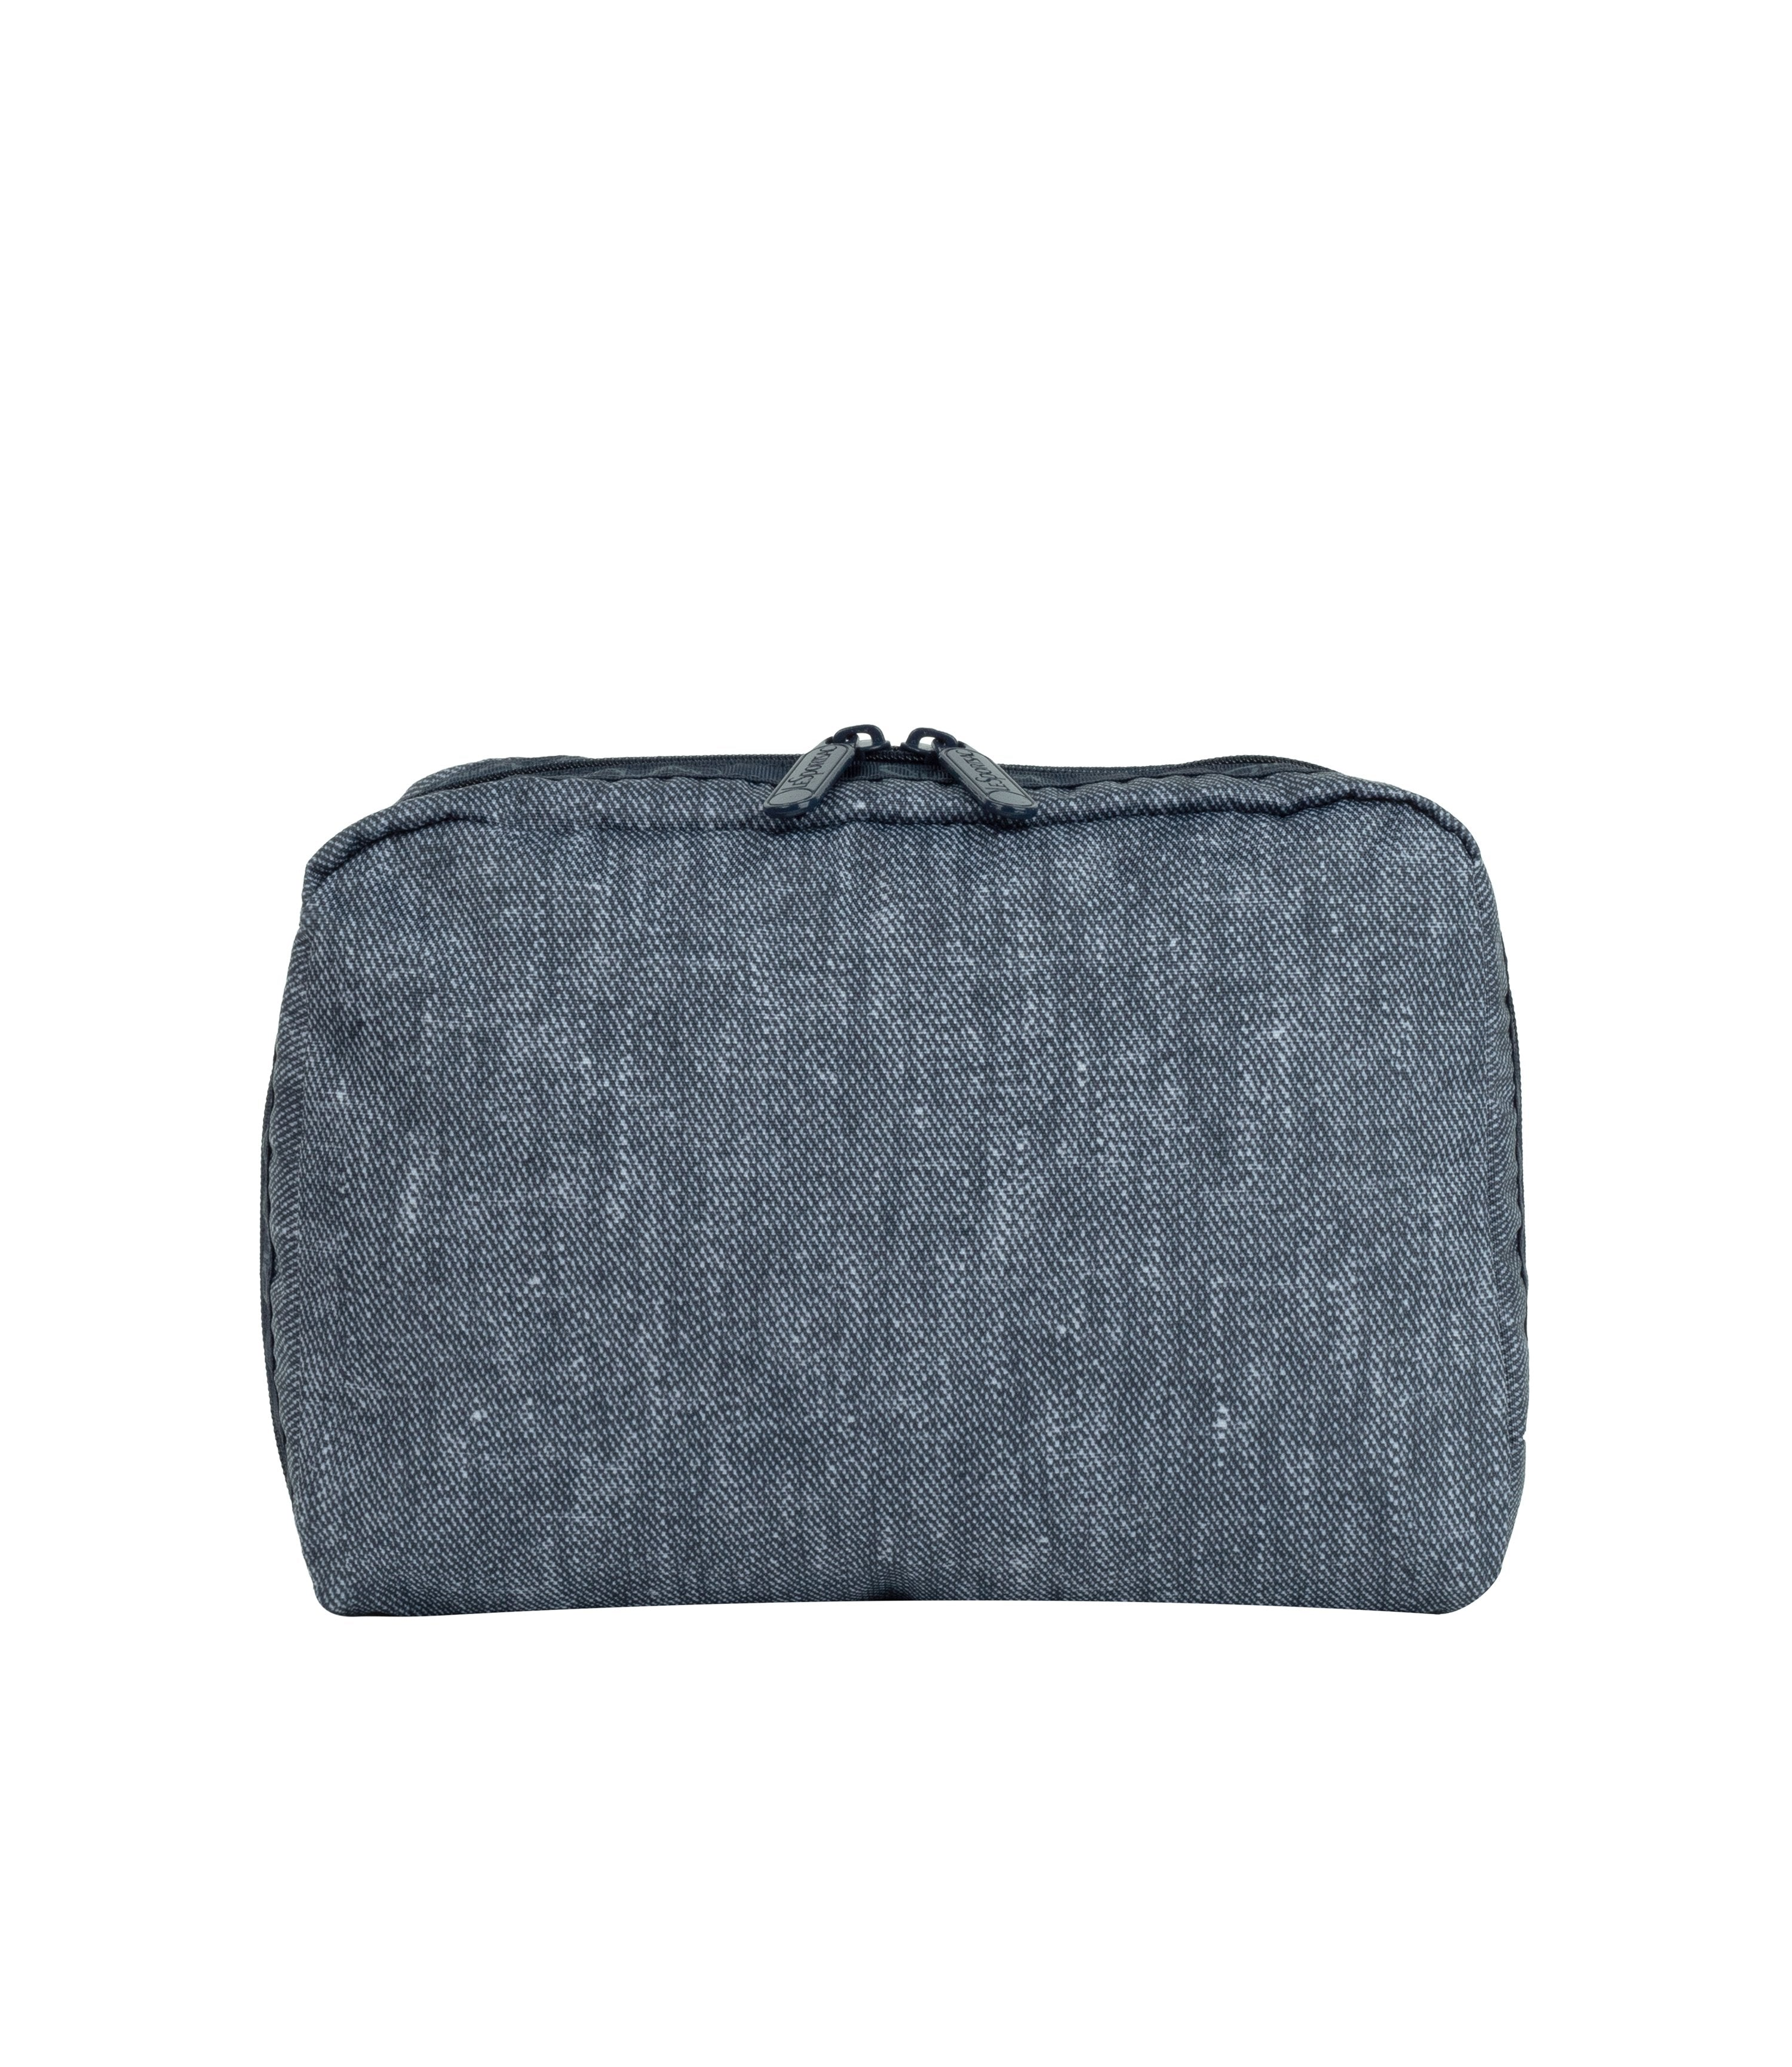 LeSportsac - Accessories - ReCycled XL Rectangular Cosmetic - Eco Chambray Blue